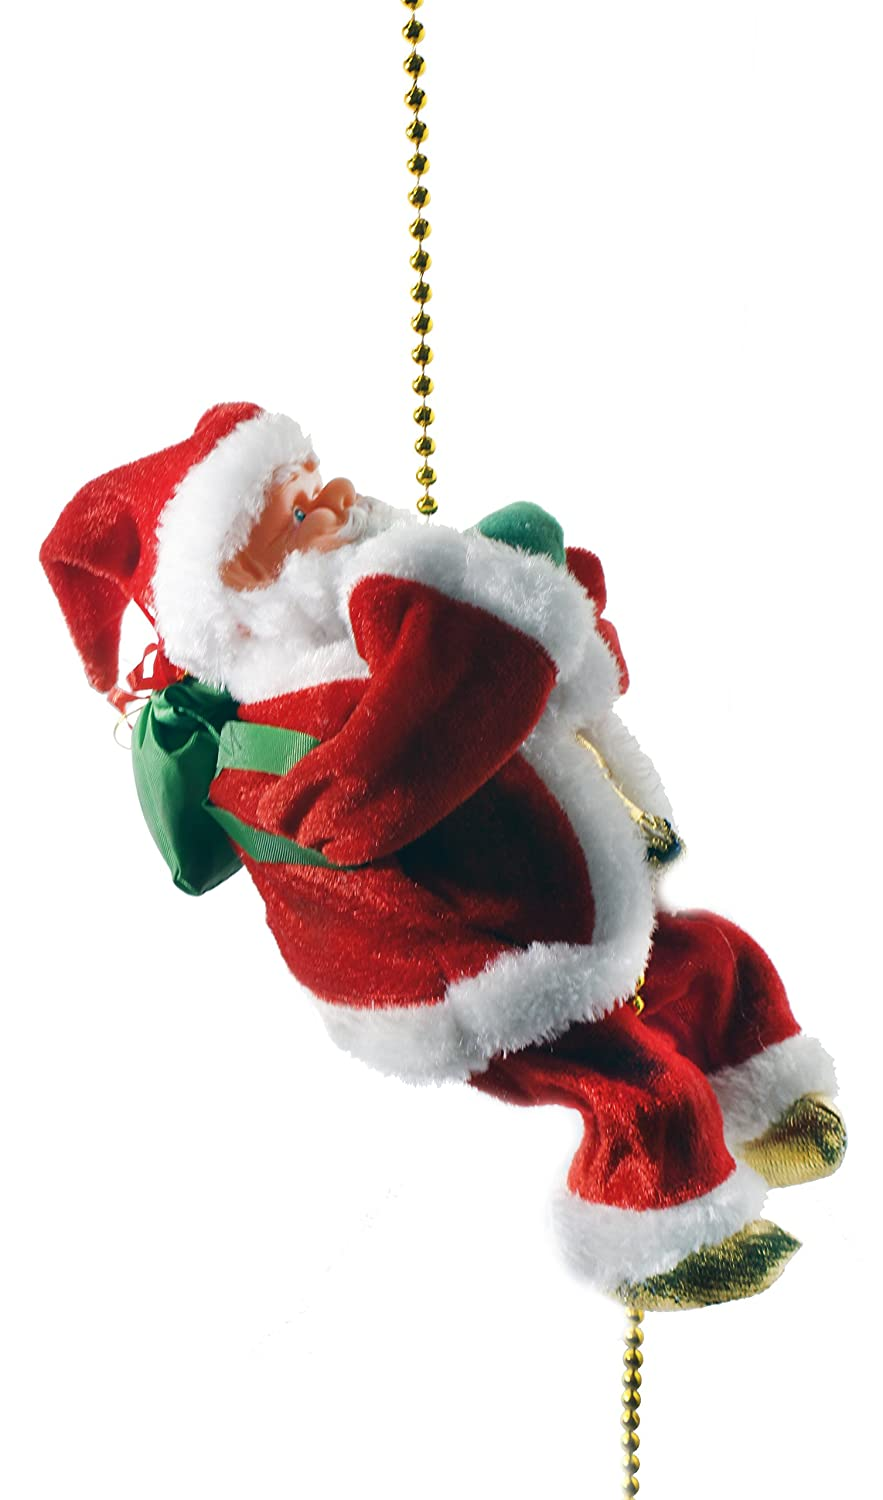 Rock climbing christmas ornaments - Amazon Com Haktoys 9 Climbing Santa Christmas Ornament Decoration Toy With Light And Music Home Kitchen